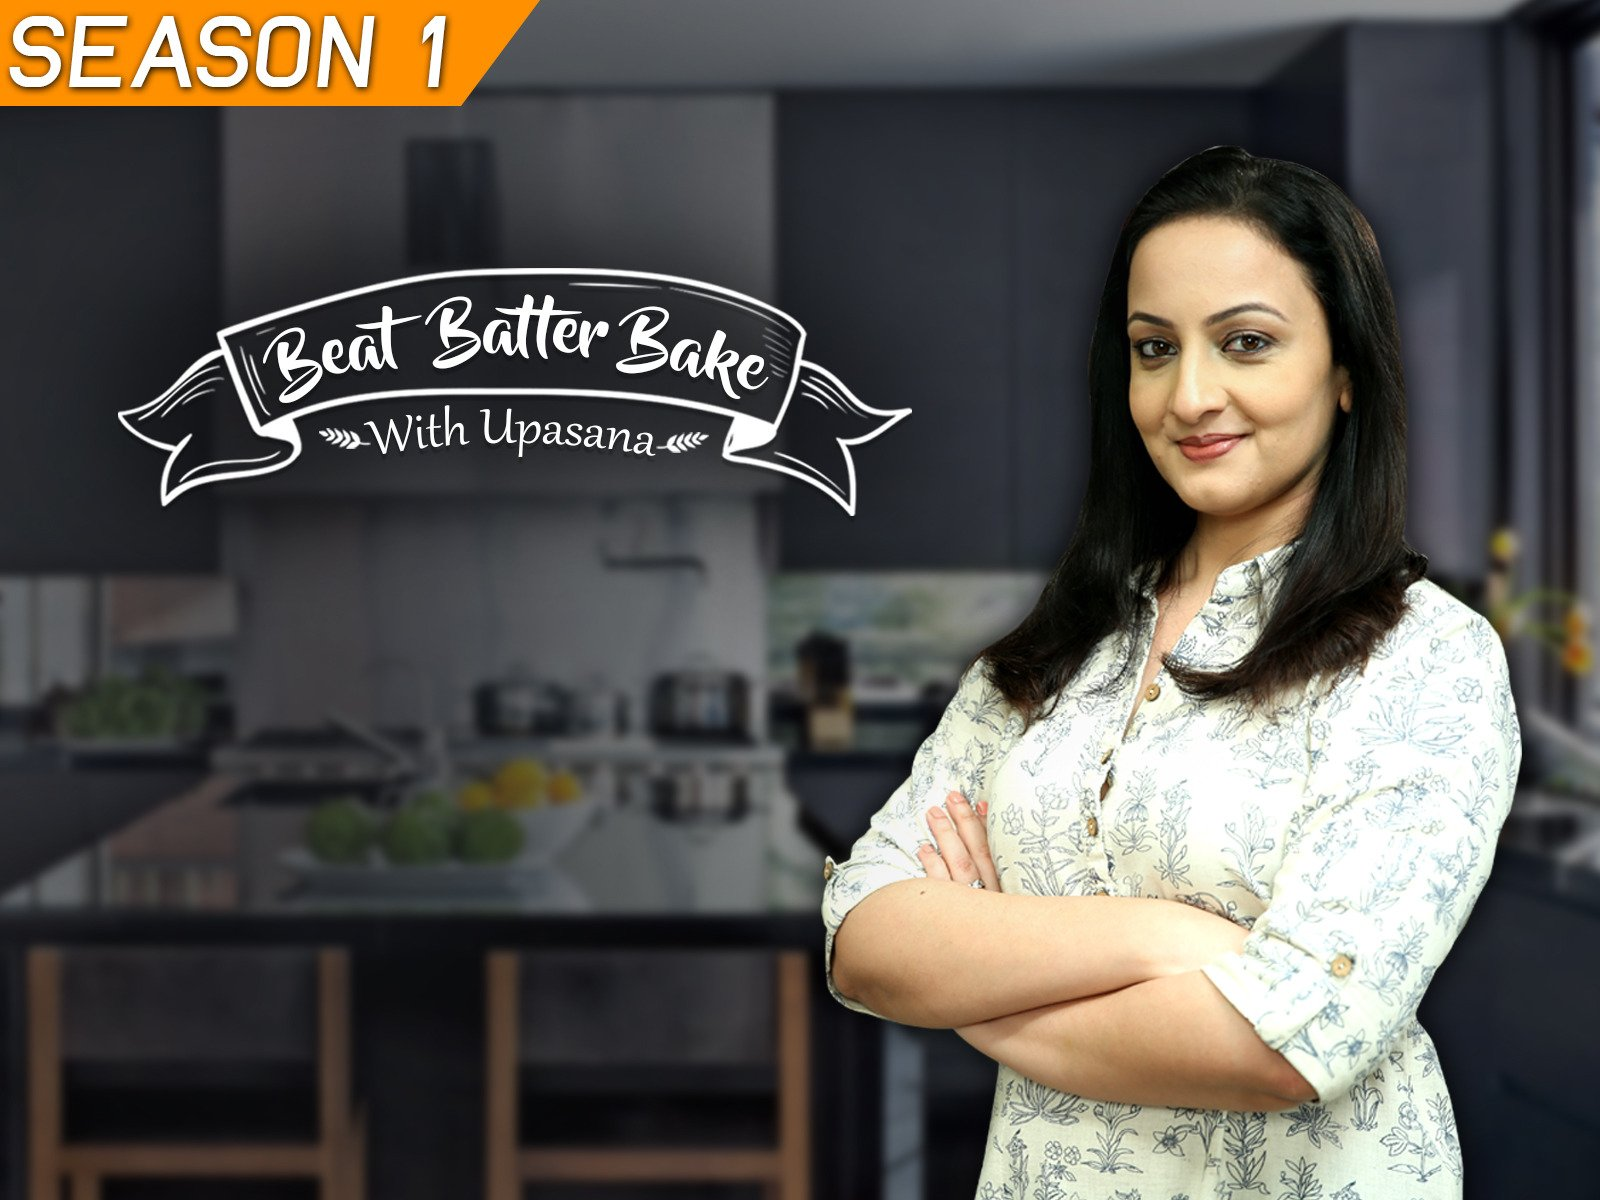 Clip: Beat Batter Bake with Upasana - Season 1